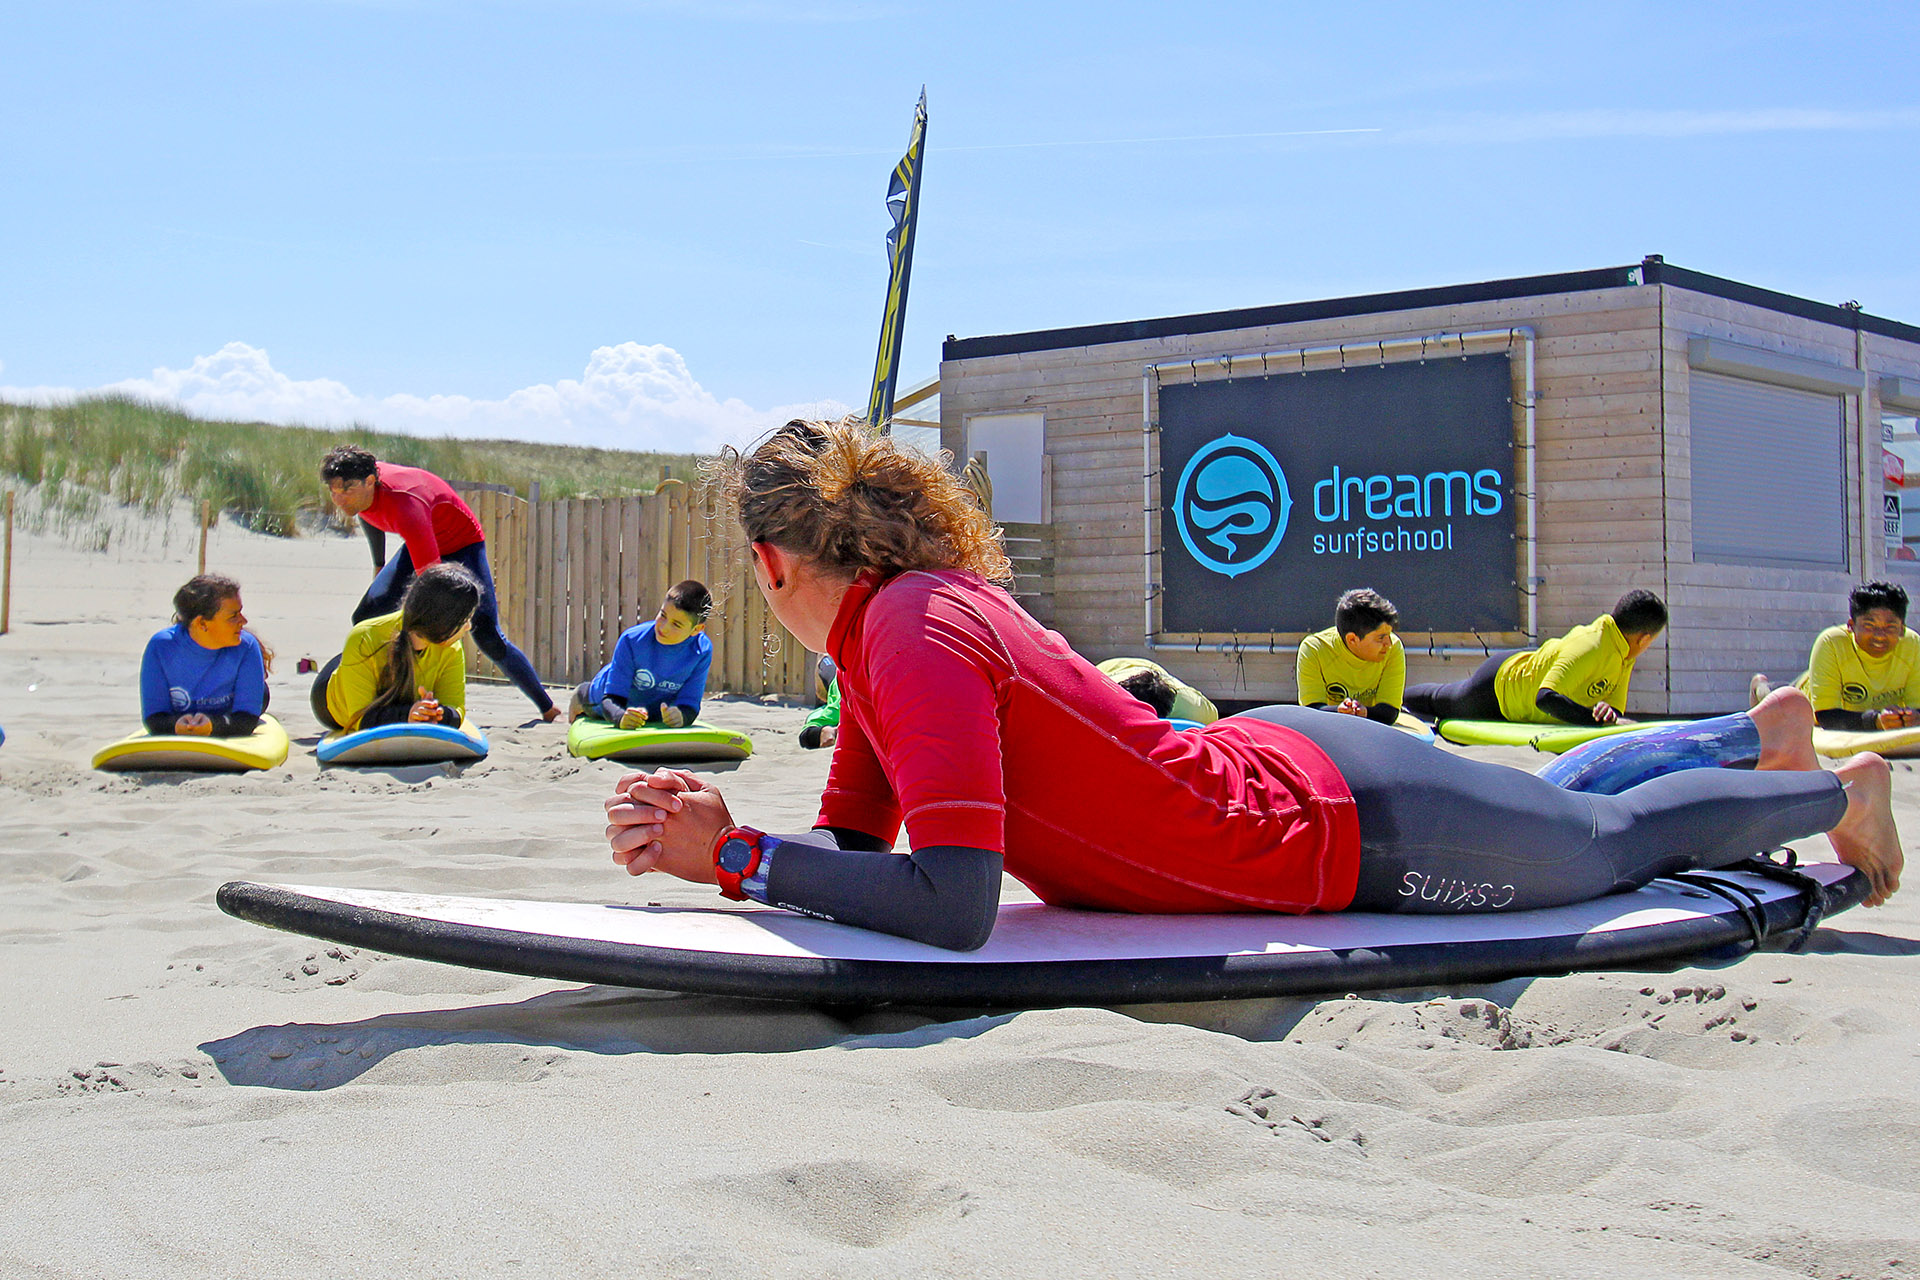 Surfles bij Dreams Surfschool